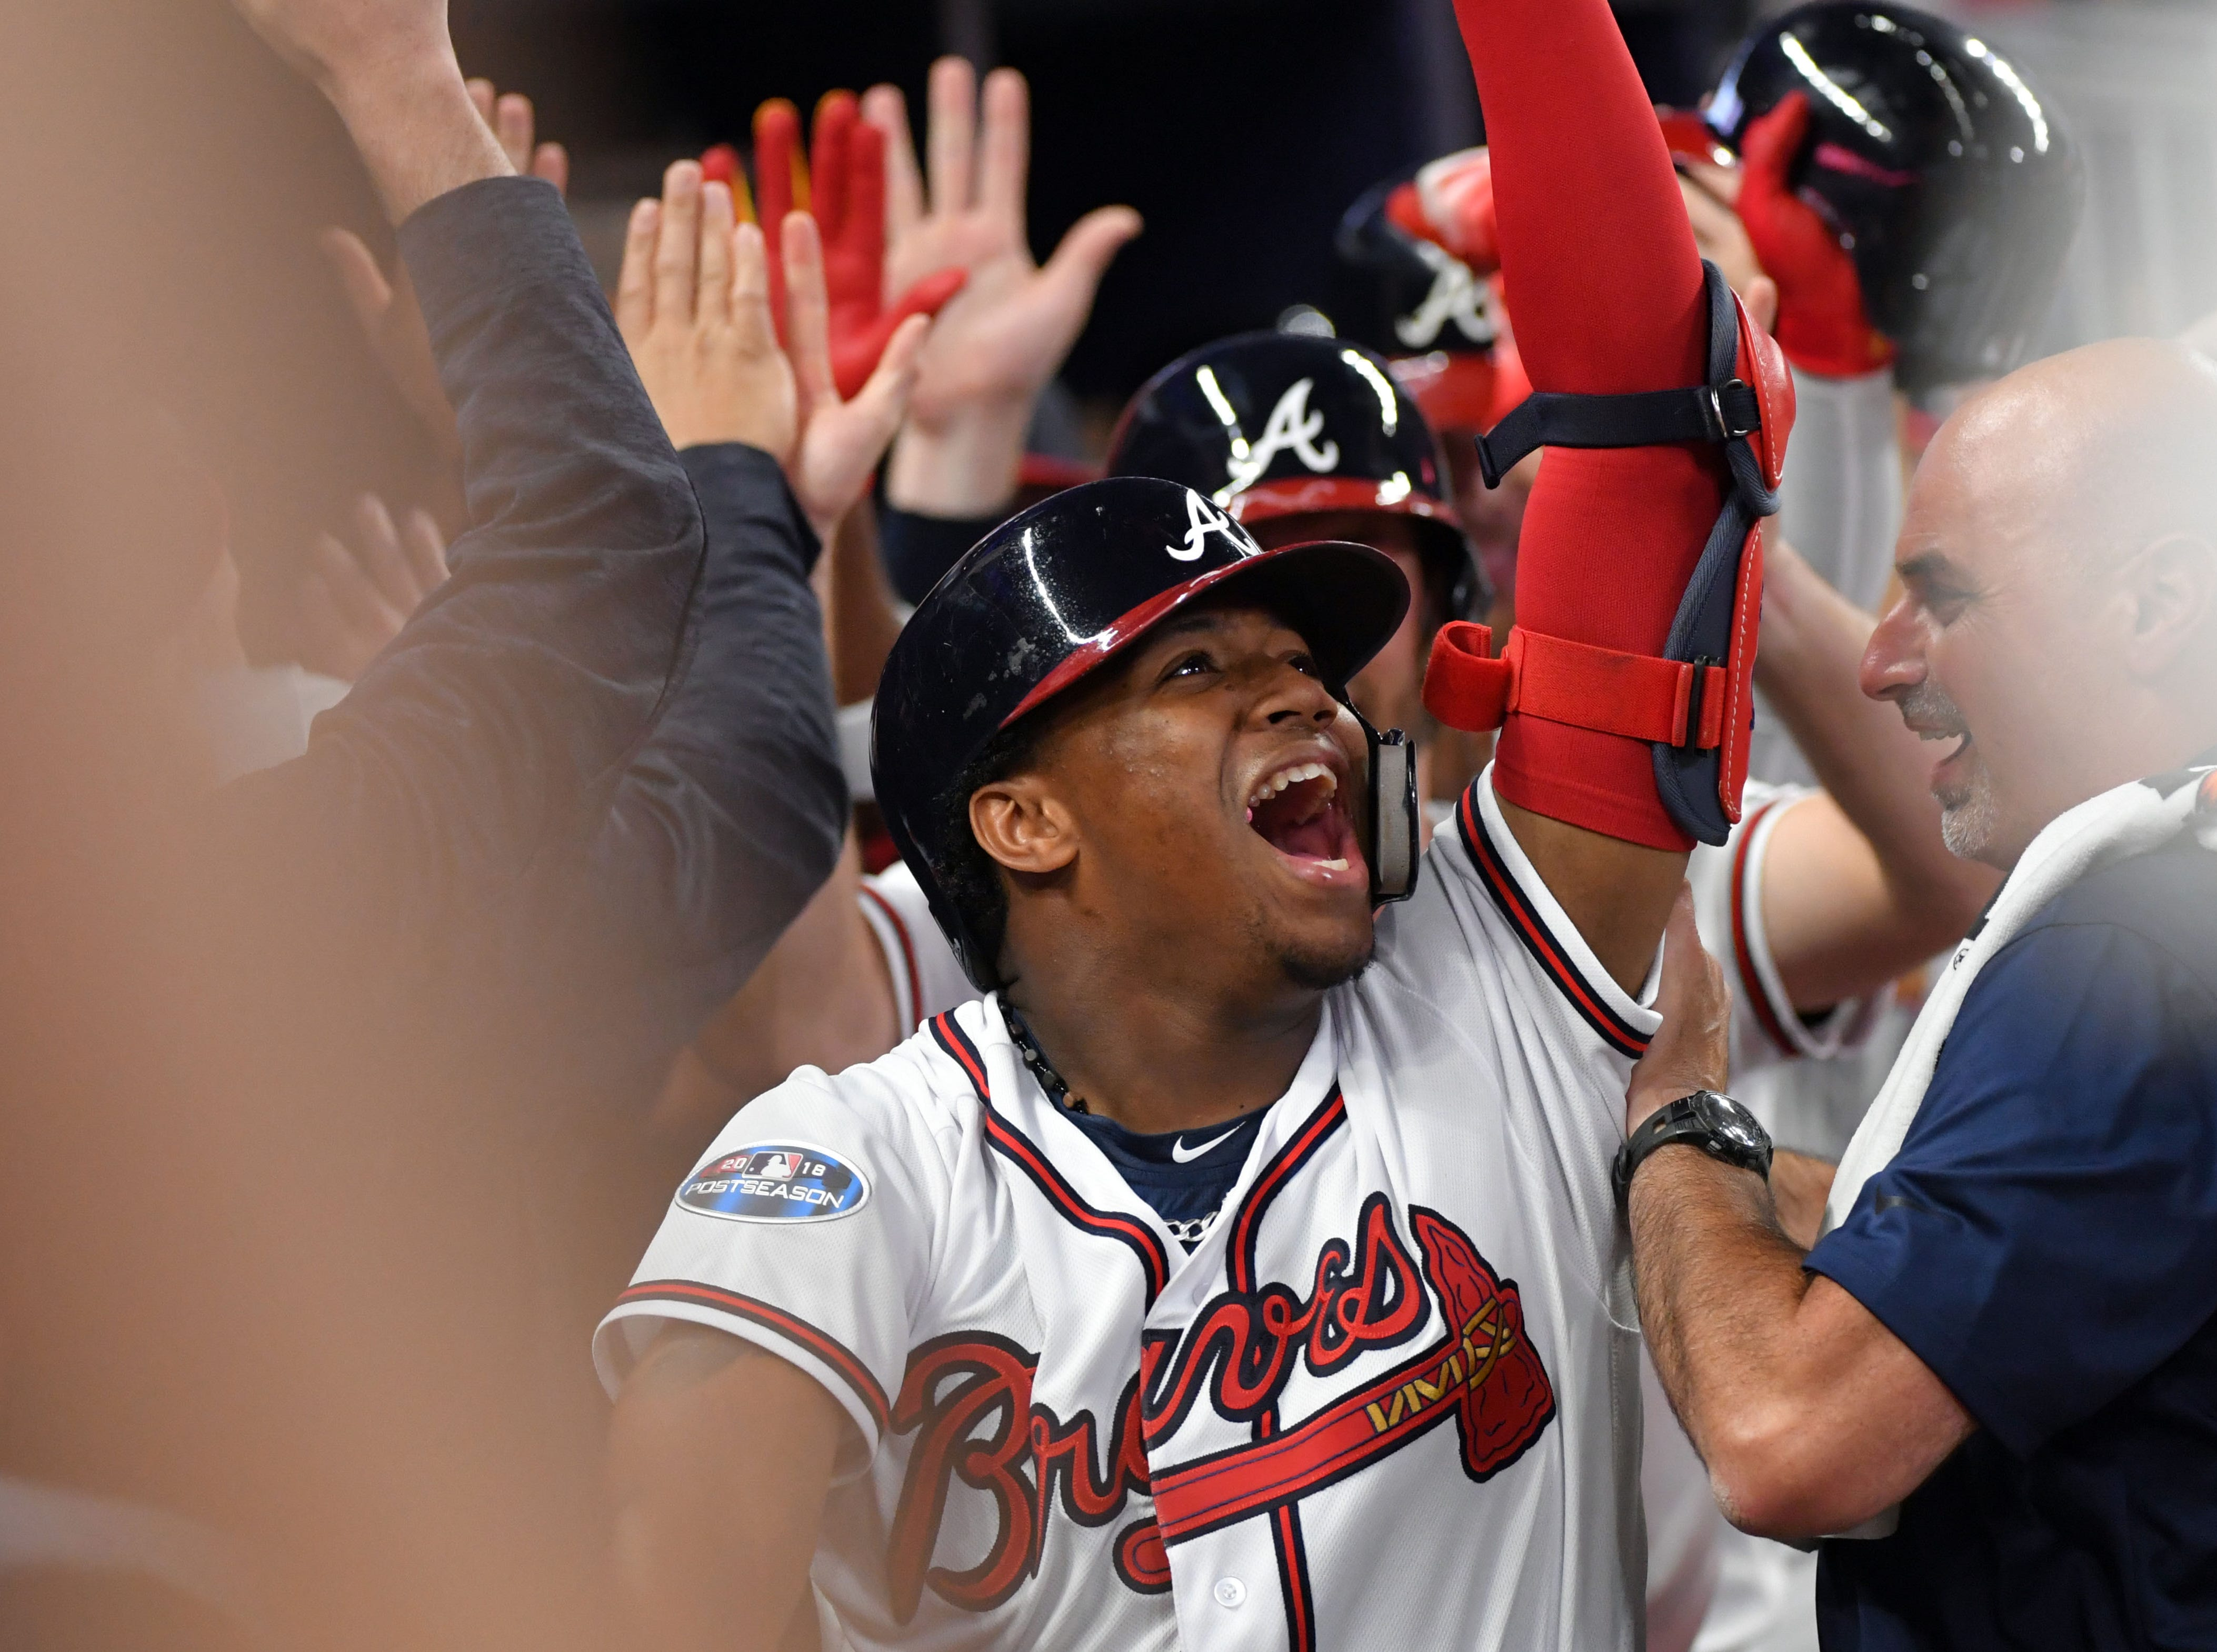 NLDS Game 3: Braves outfielder Ronald Acuna celebrates his grand slam in the second inning.